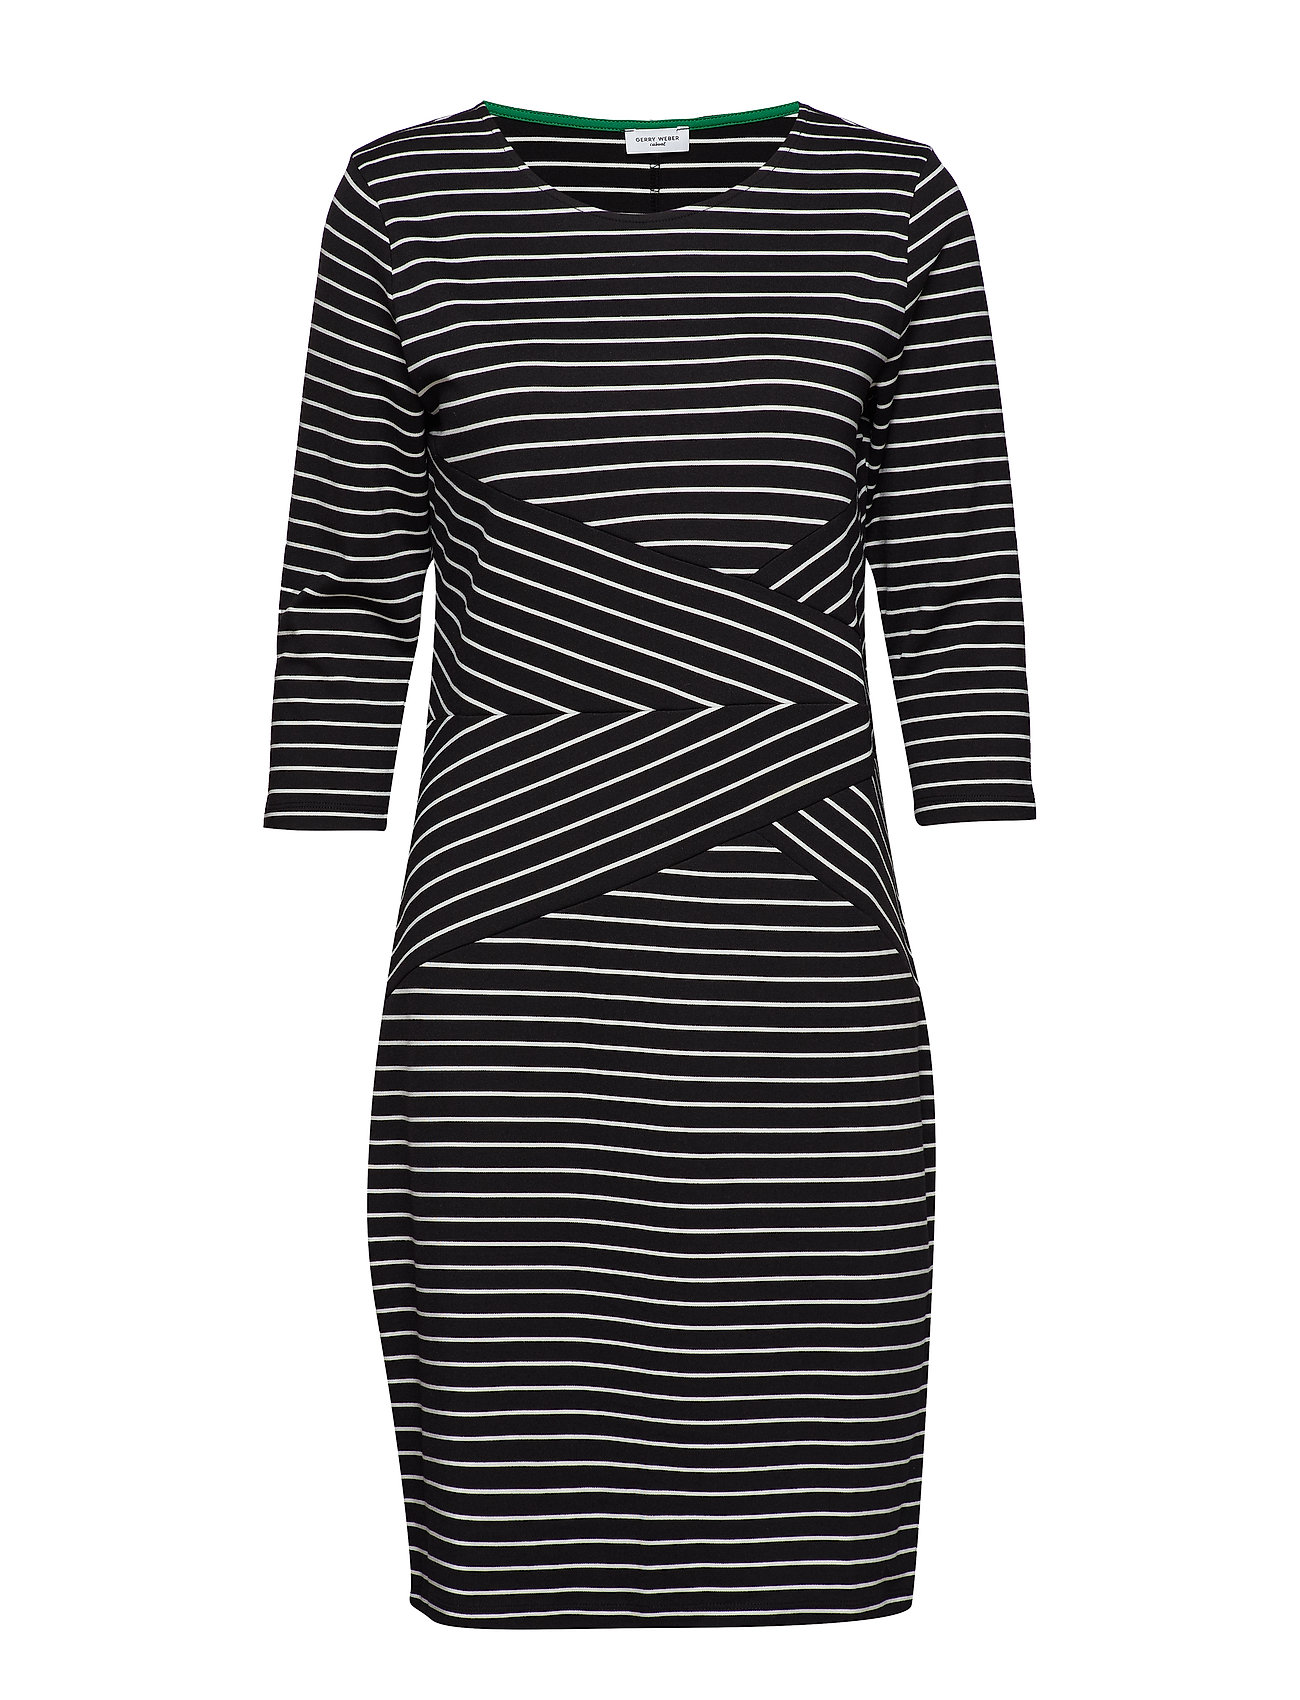 Gerry Weber Edition DRESS KNITTED FABRIC - BLACK/ECRU/WHITE HOOPS